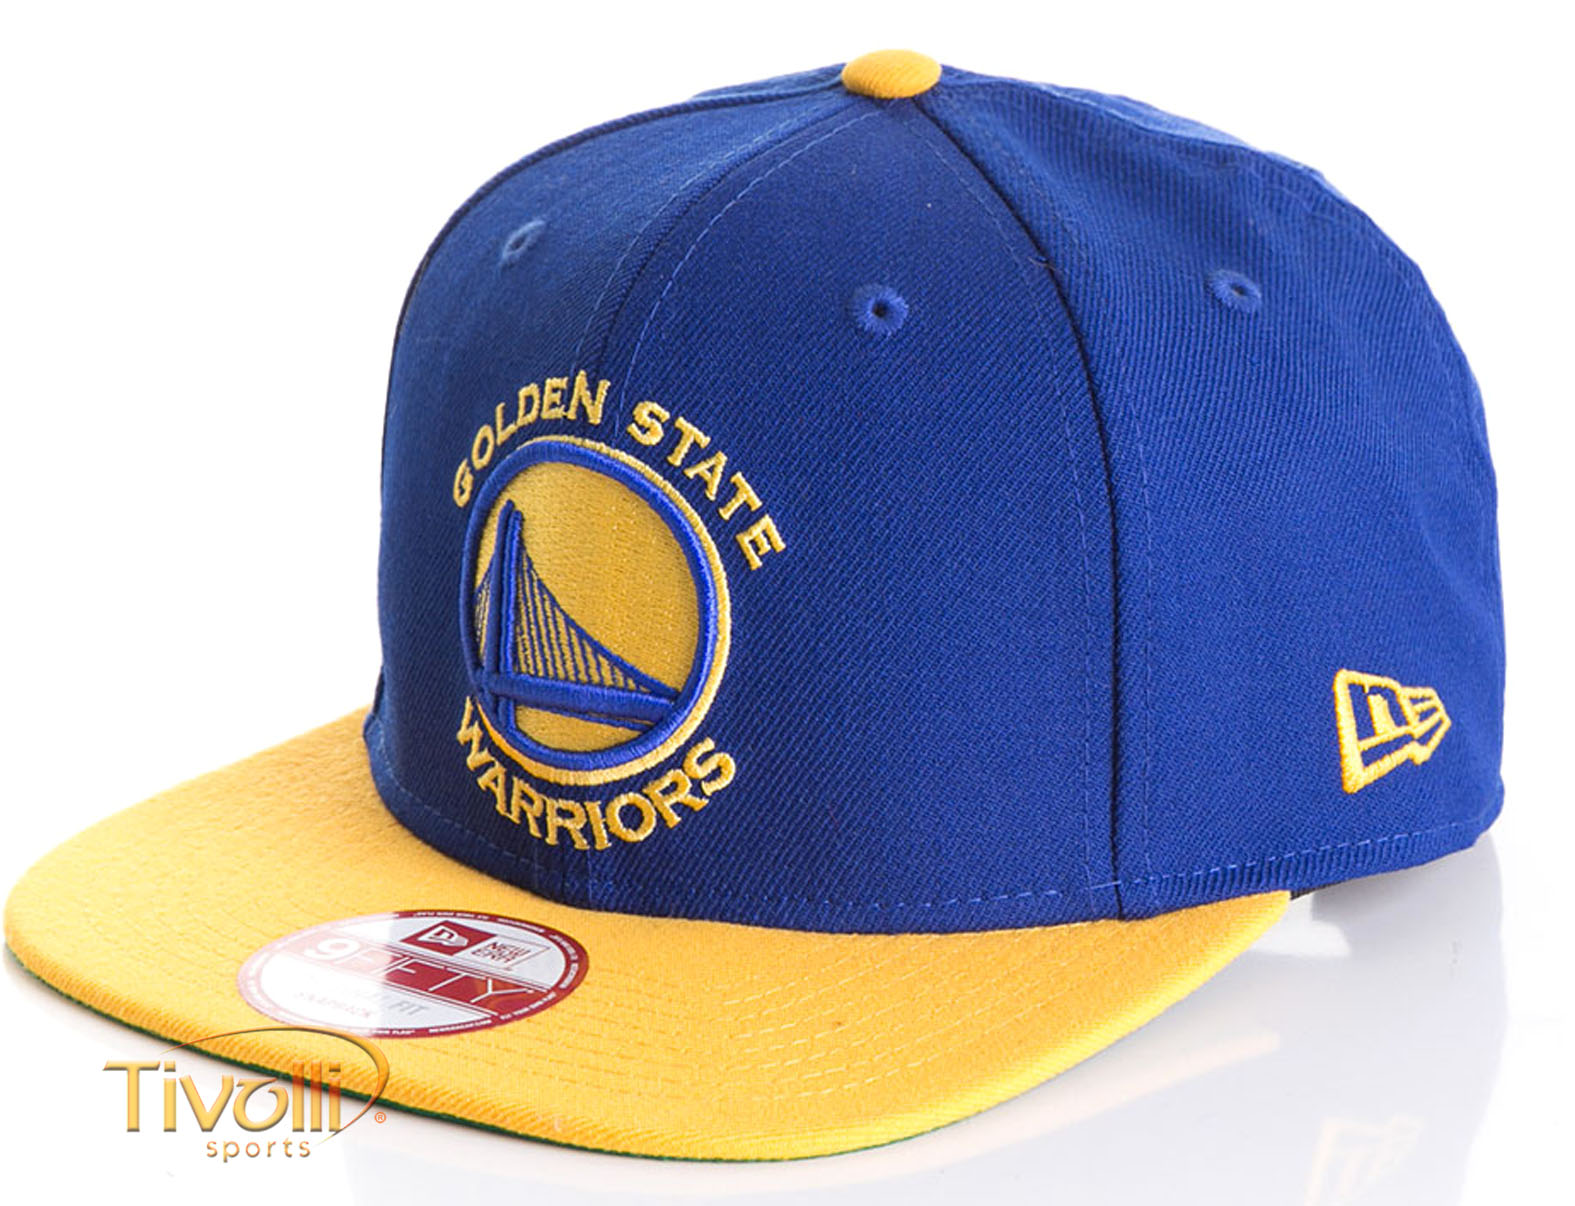 Boné New Era 950 Original Fit Golden State Warriors